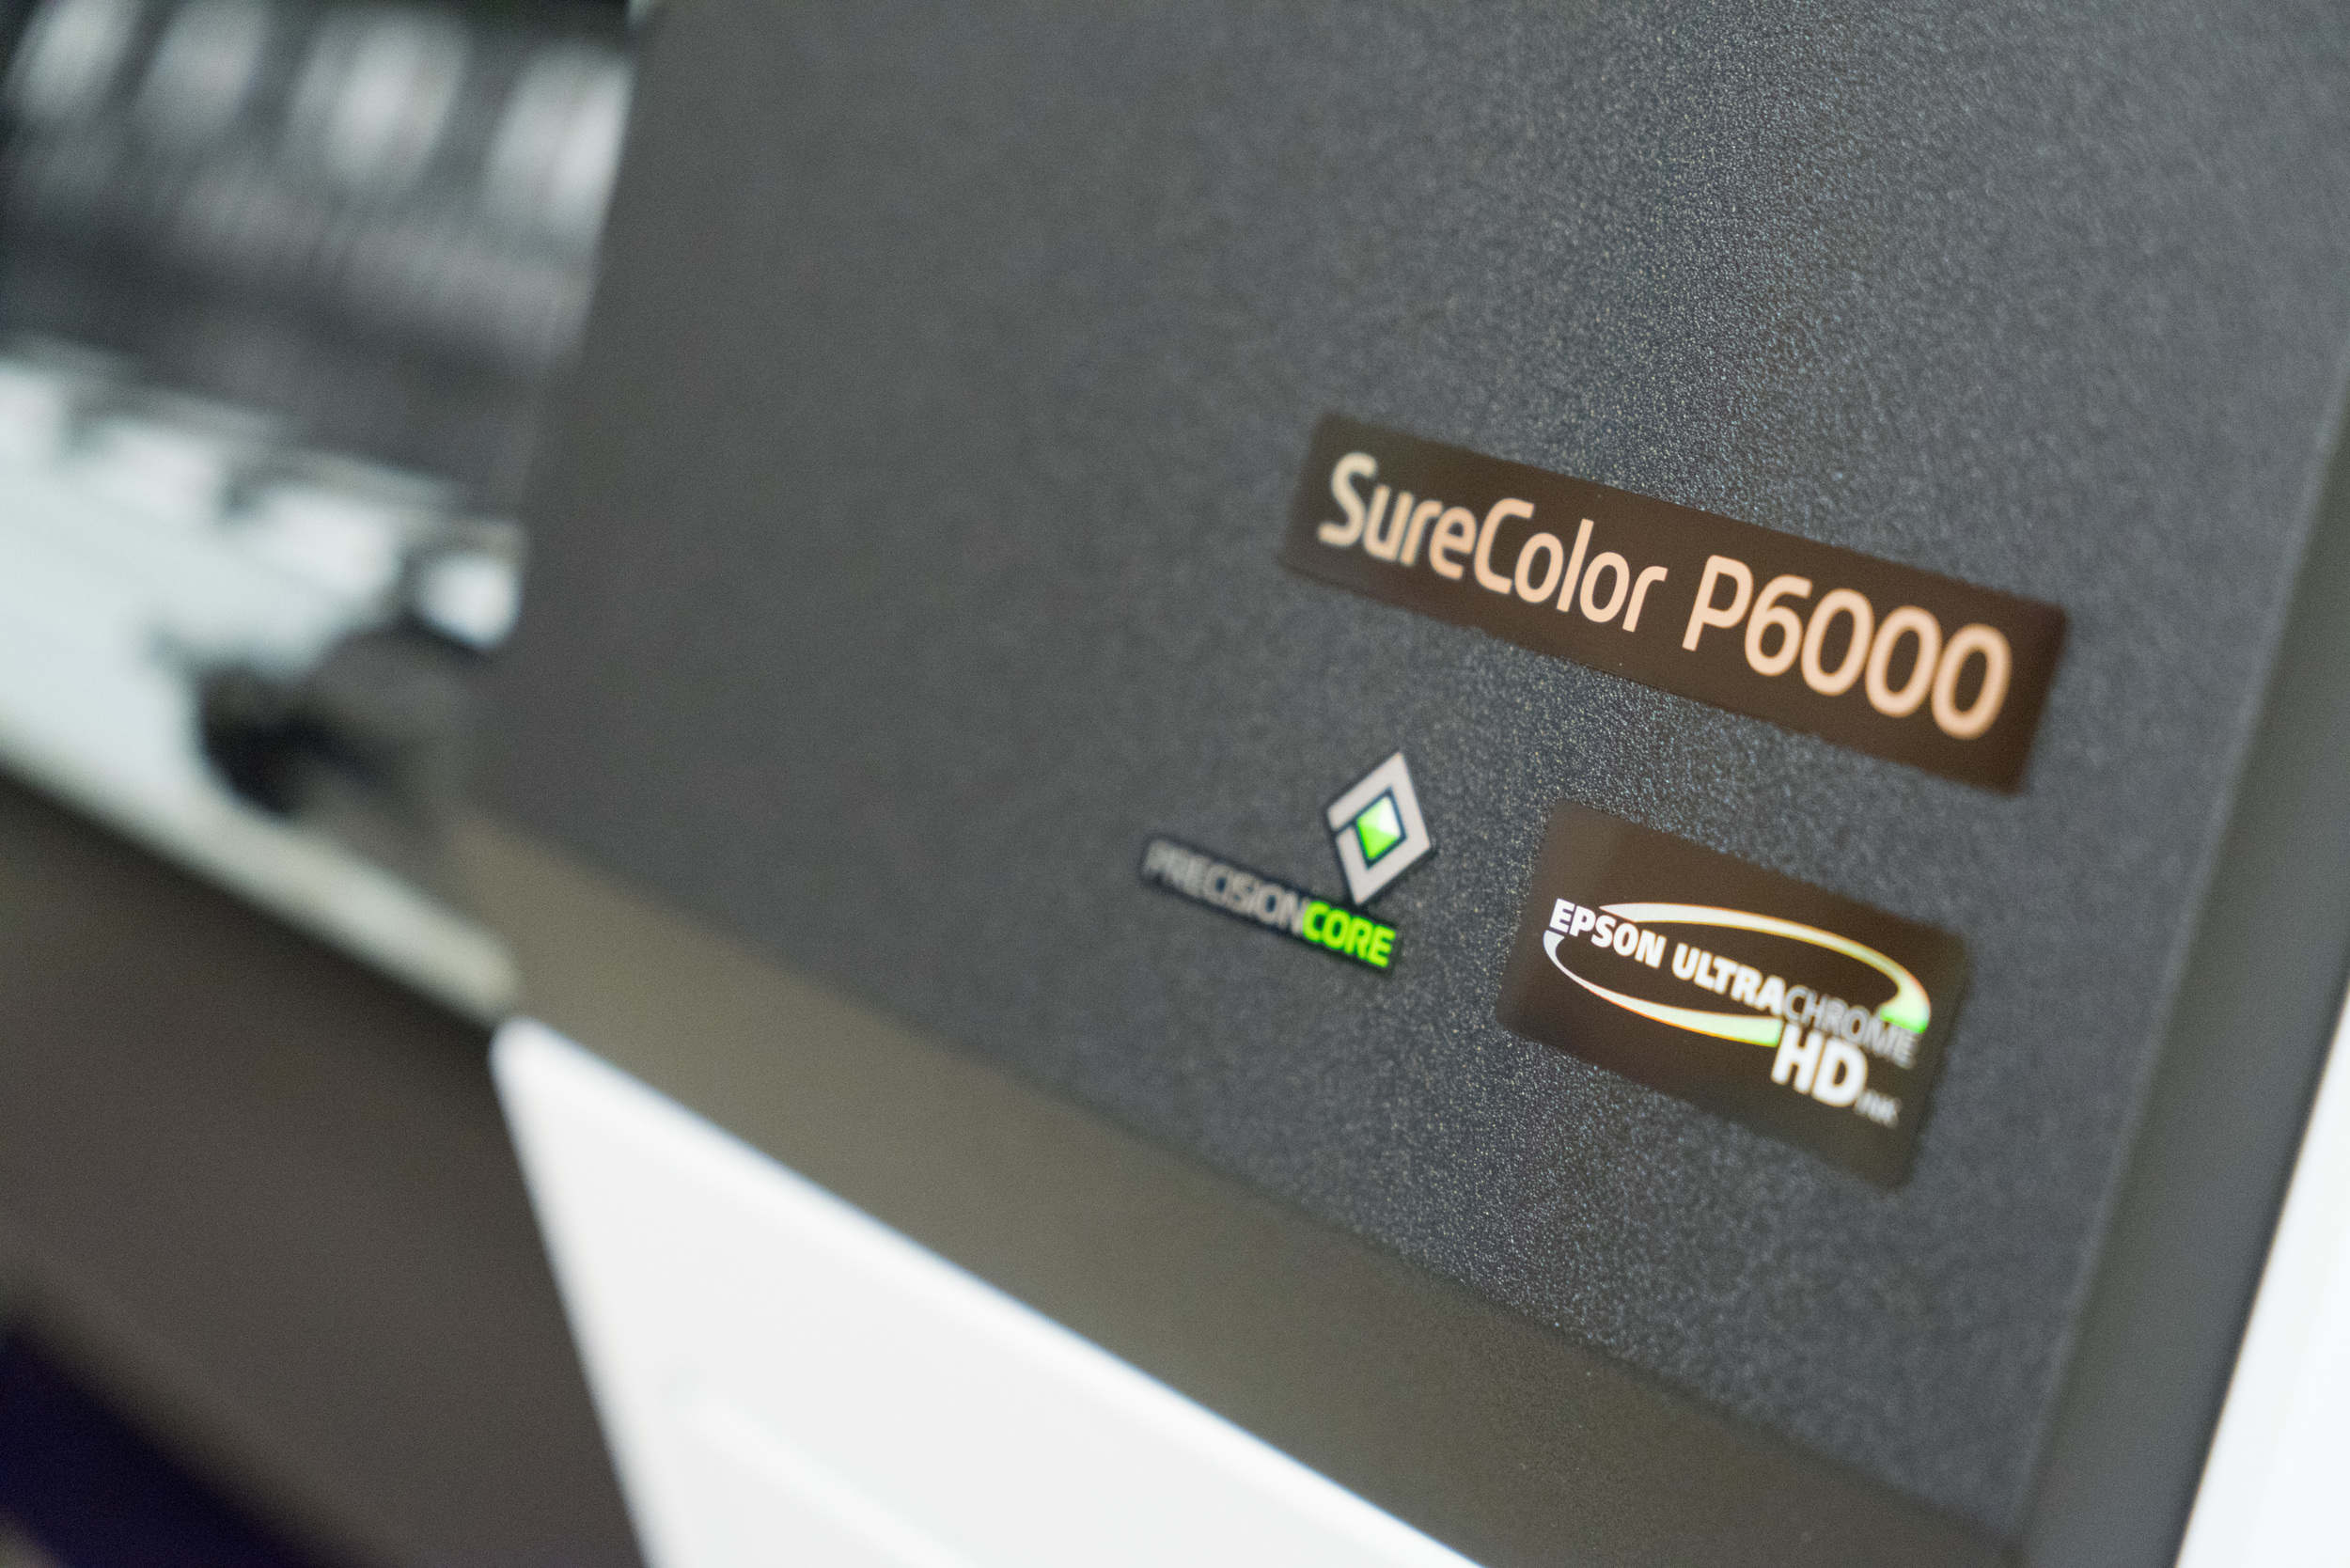 "Our large format printer by Epson, the SureColor P6000 capable of 24"" wide borderless printing using a color precise 9 ink system for beautiful gradations."